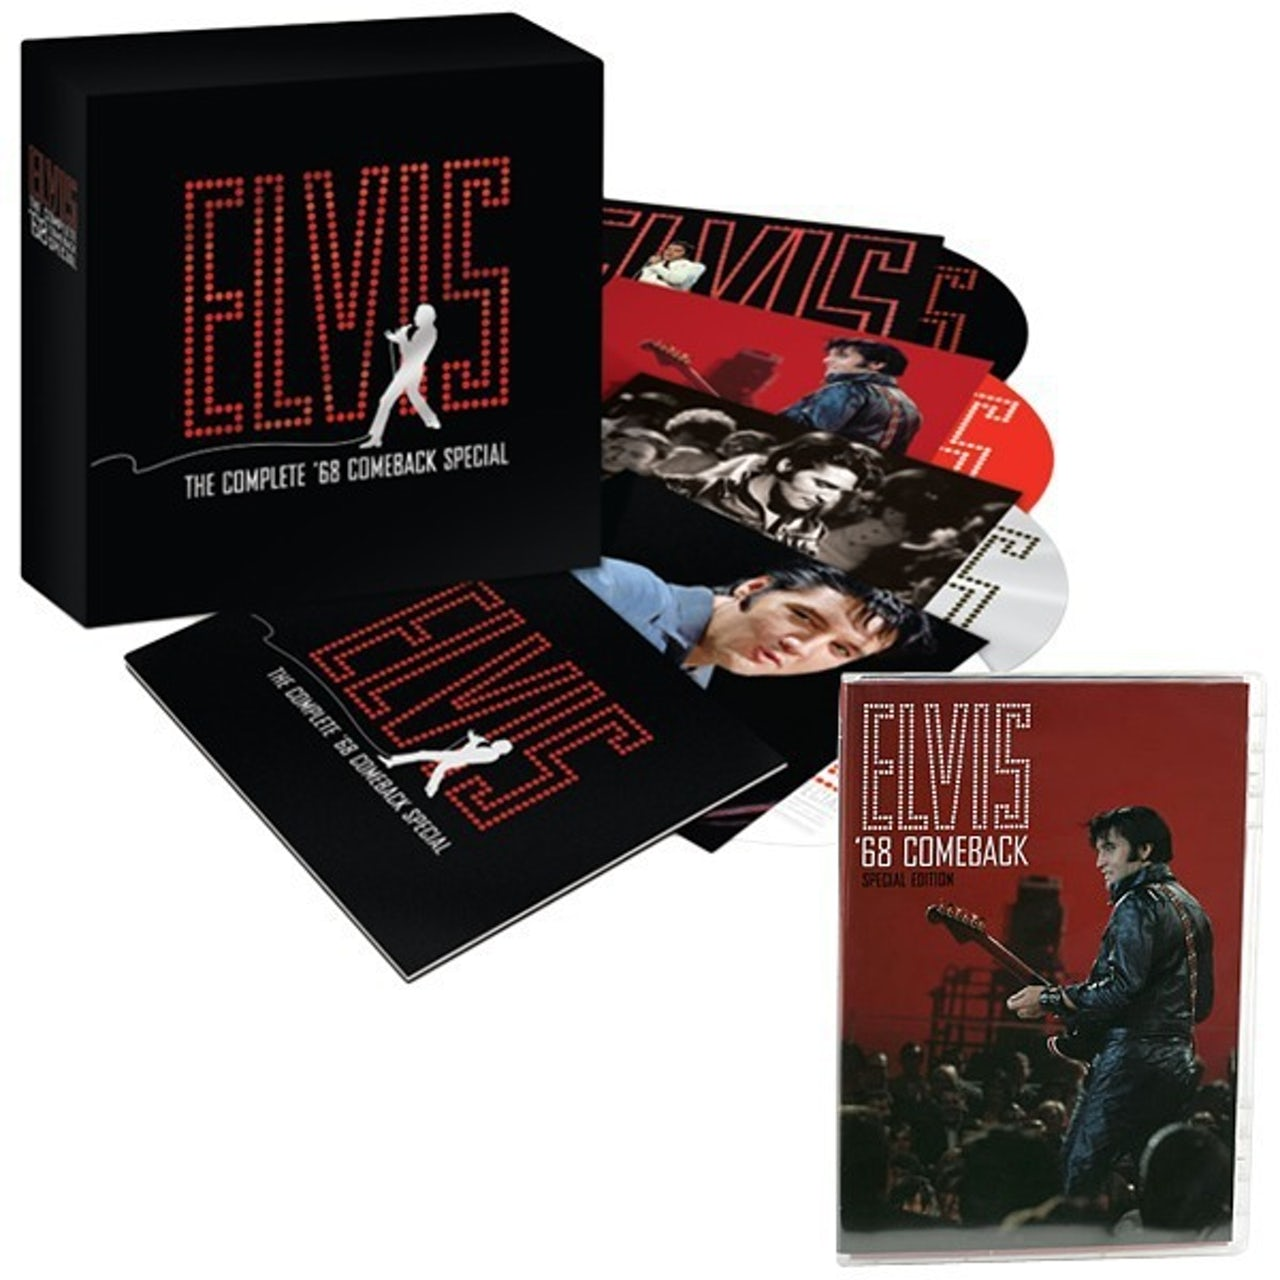 Elvis Presley 68 Comeback Special 40th Anniversary CD Set And DVD Combo Touch To Zoom